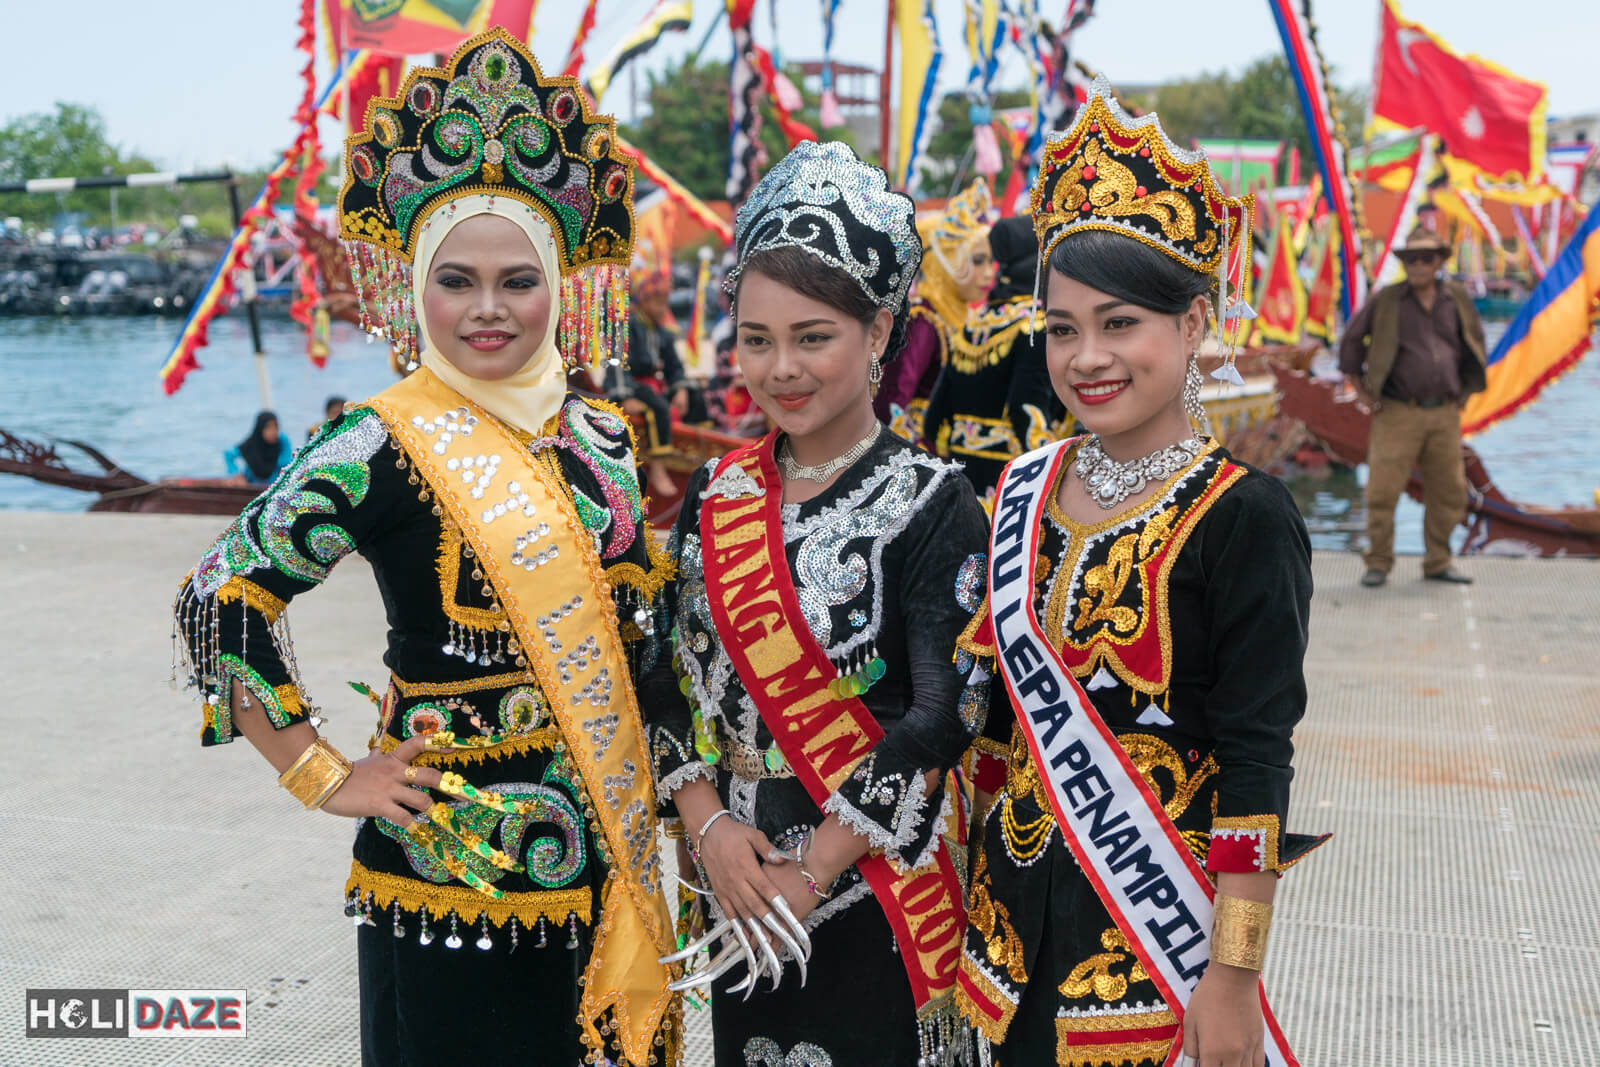 Local girls at the Regatta Lepa festivalin Semporna, Sabah